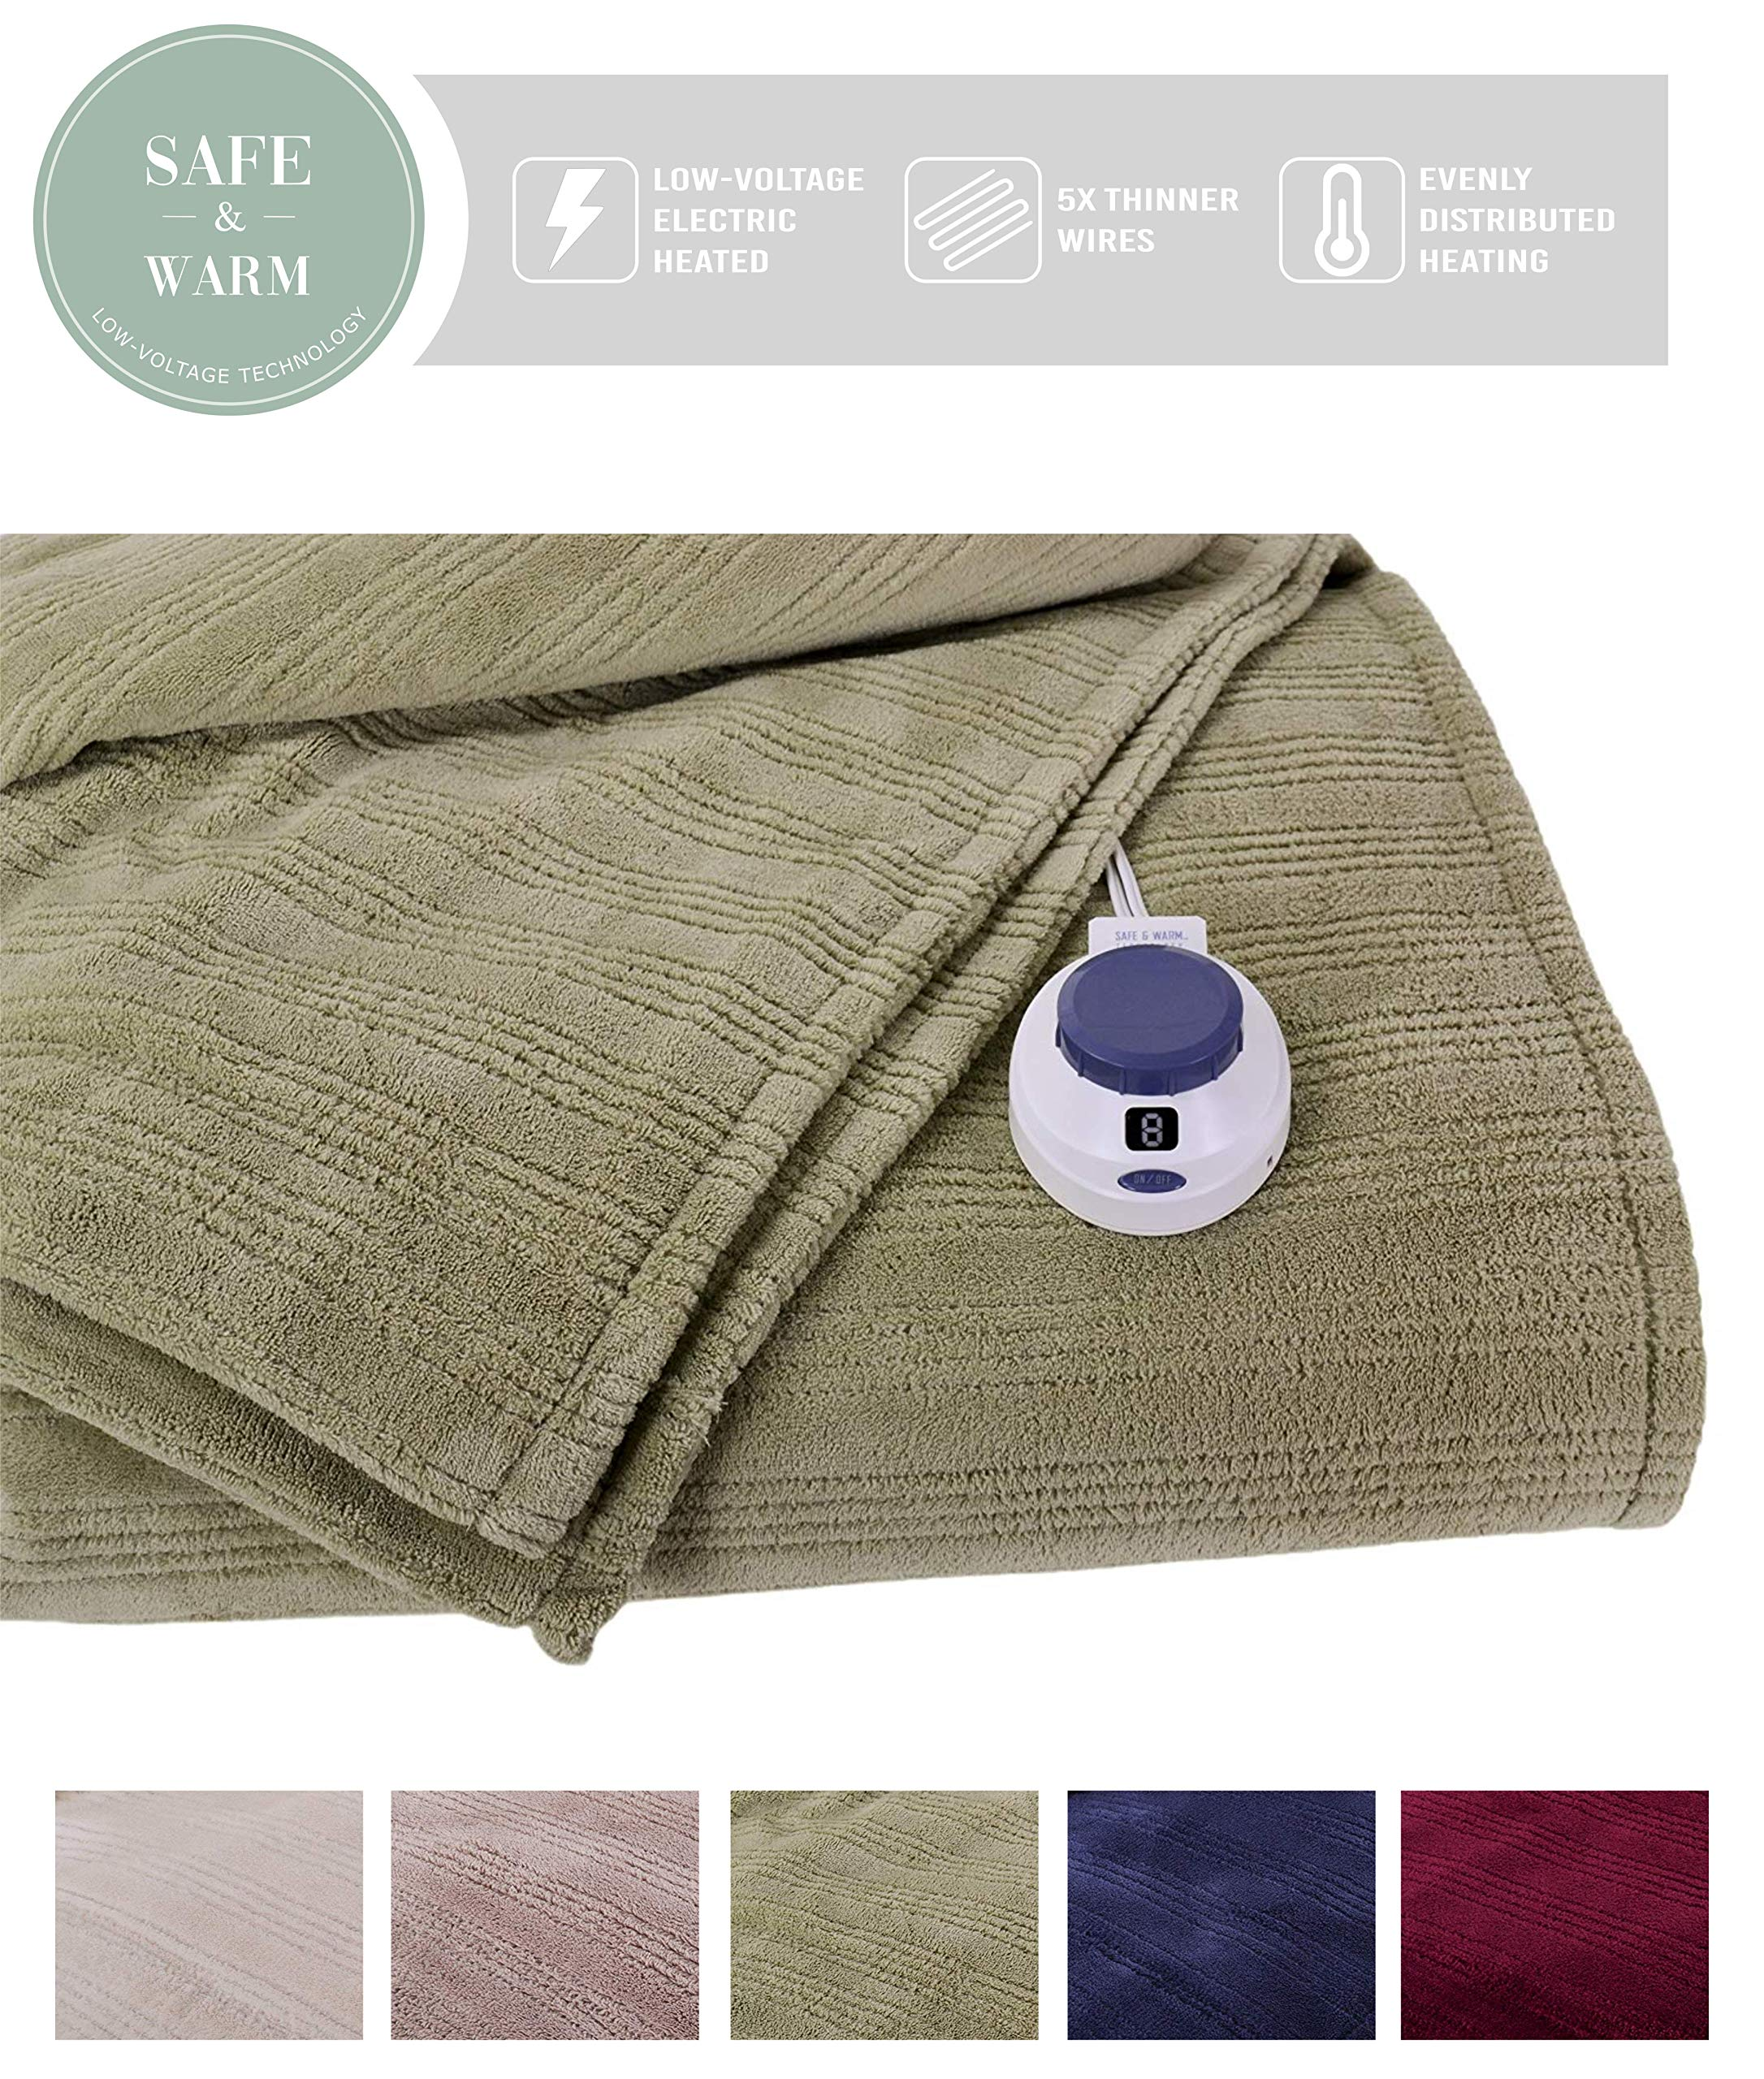 SoftHeat by Perfect Fit | Ultra Soft Plush Electric Heated Warming Blanket with Safe & Warm Low-Voltage Technology (Twin, Sage Green)